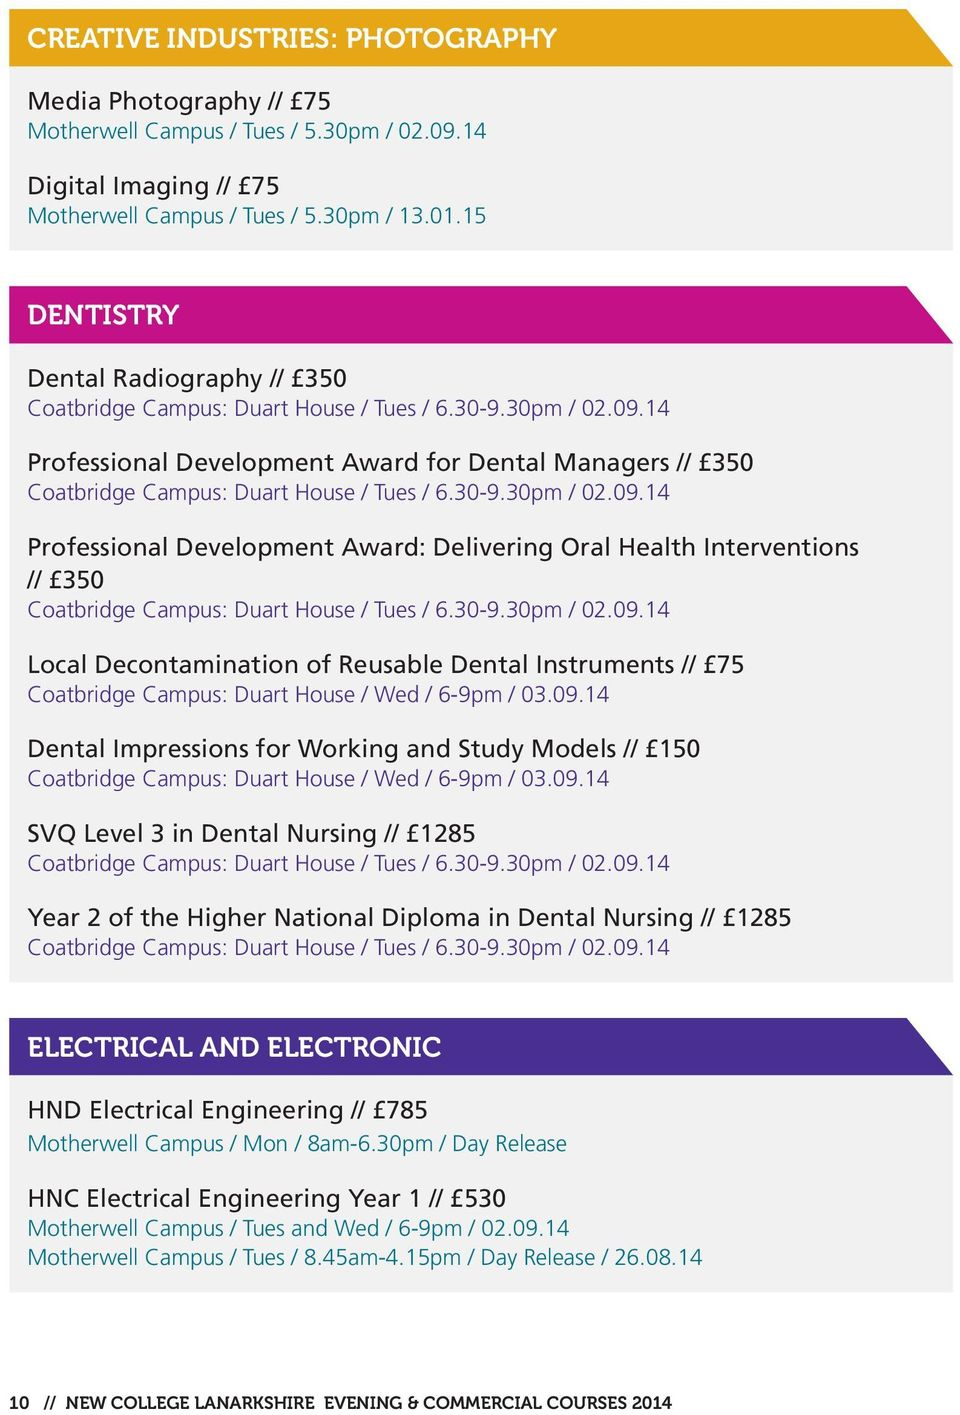 14 Professional Development Award for Dental Managers // 350 Coatbridge Campus: Duart House / Tues / 6.30-9.30pm / 02.09.